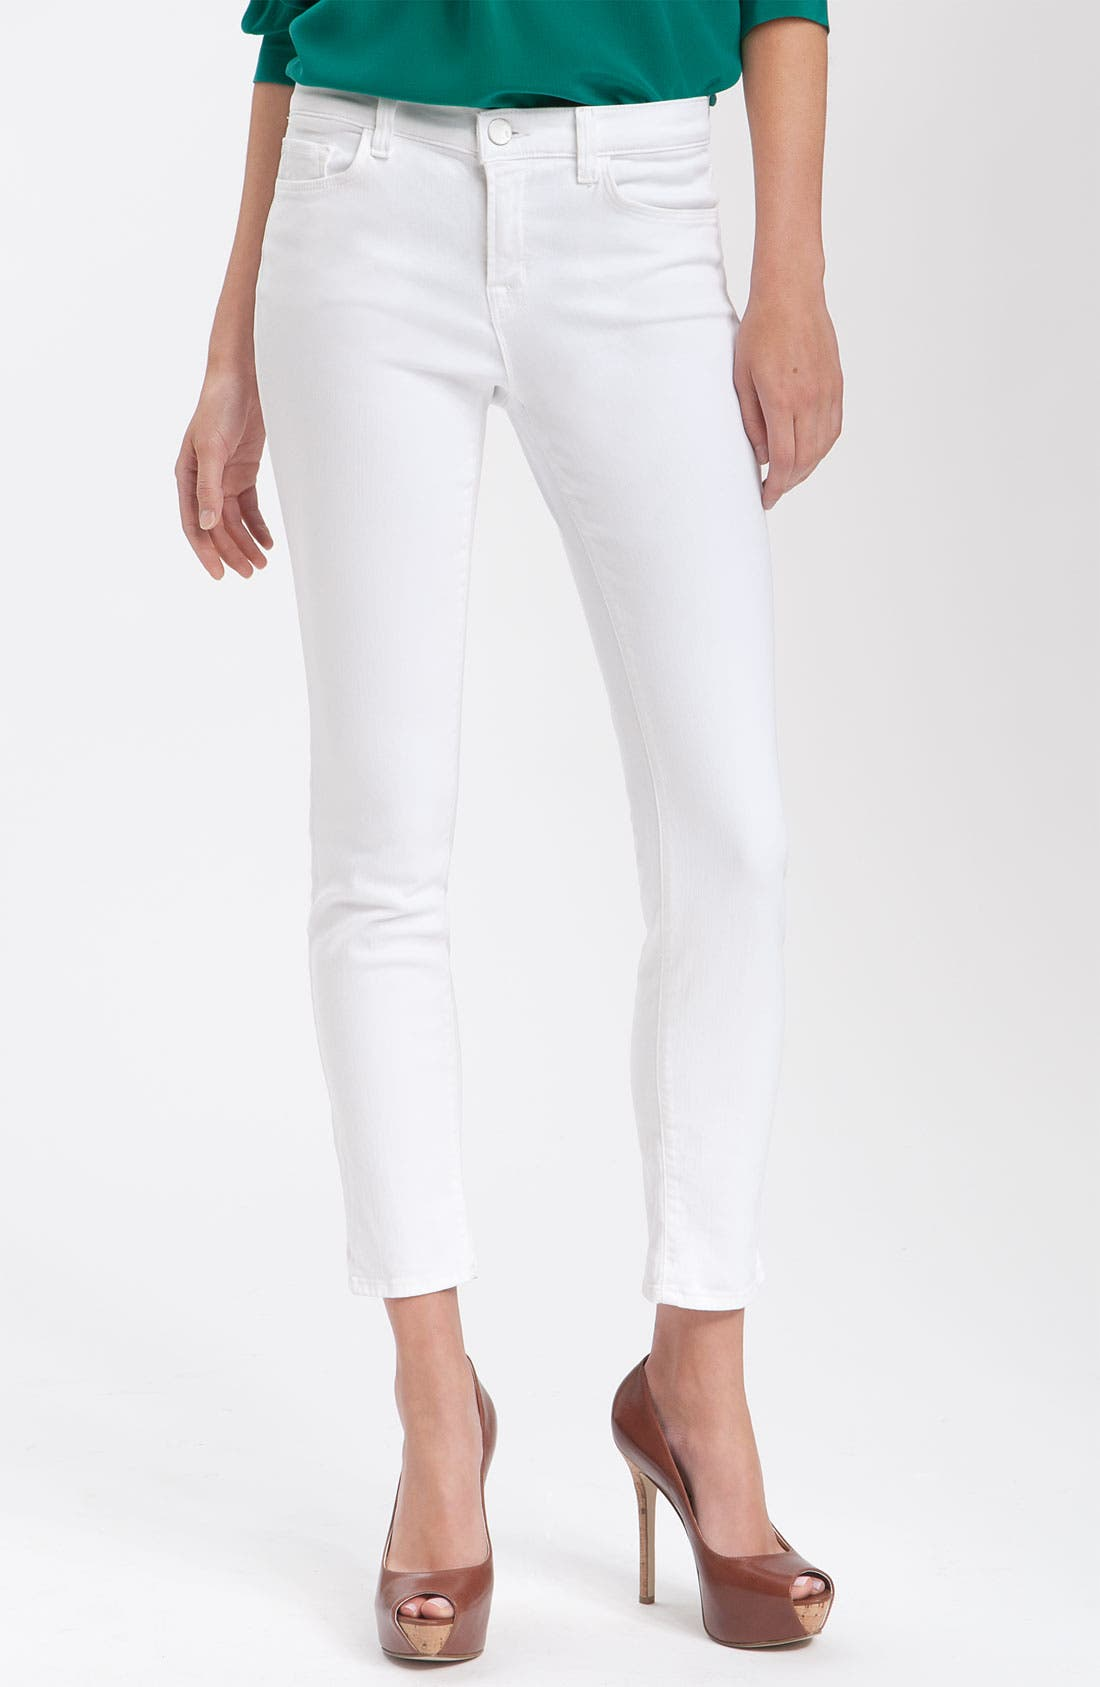 Alternate Image 1 Selected - J Brand Mid-Rise Skinny Jeans (Snow)